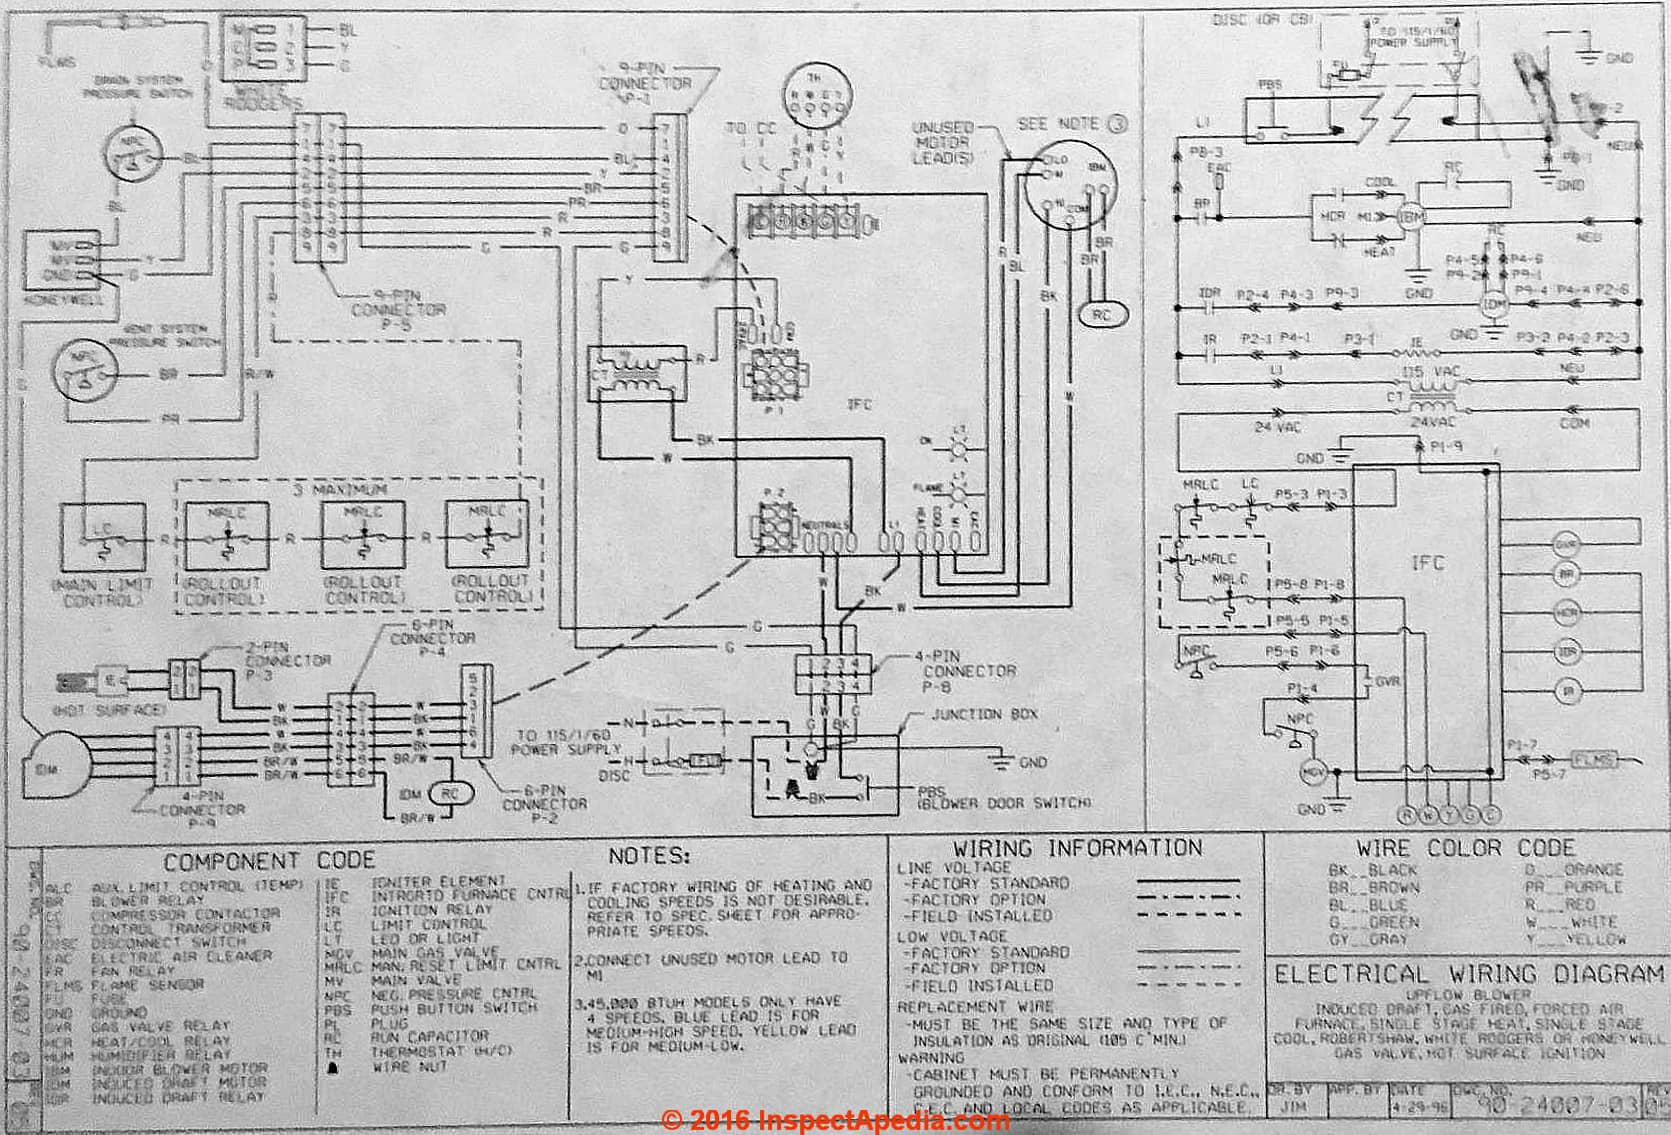 White Rodgers Thermostat Wiring Diagram 1F89 211 from wiringall.com